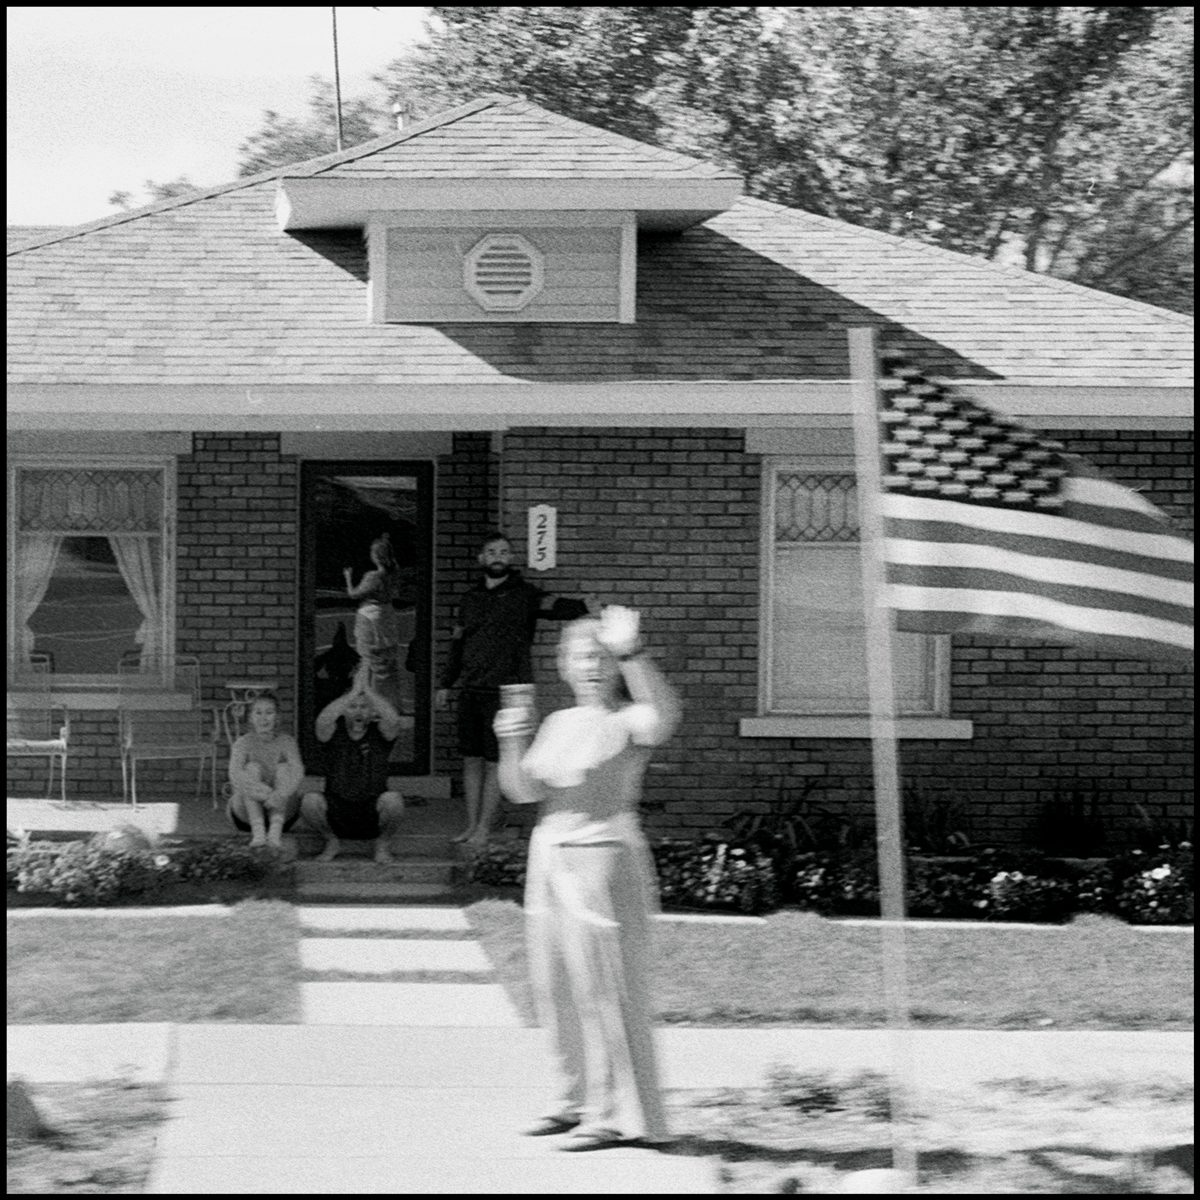 A family stands outside their home and watches a Pro Trump parade drive by. Hurricane, UT. Ilford Delta 400.